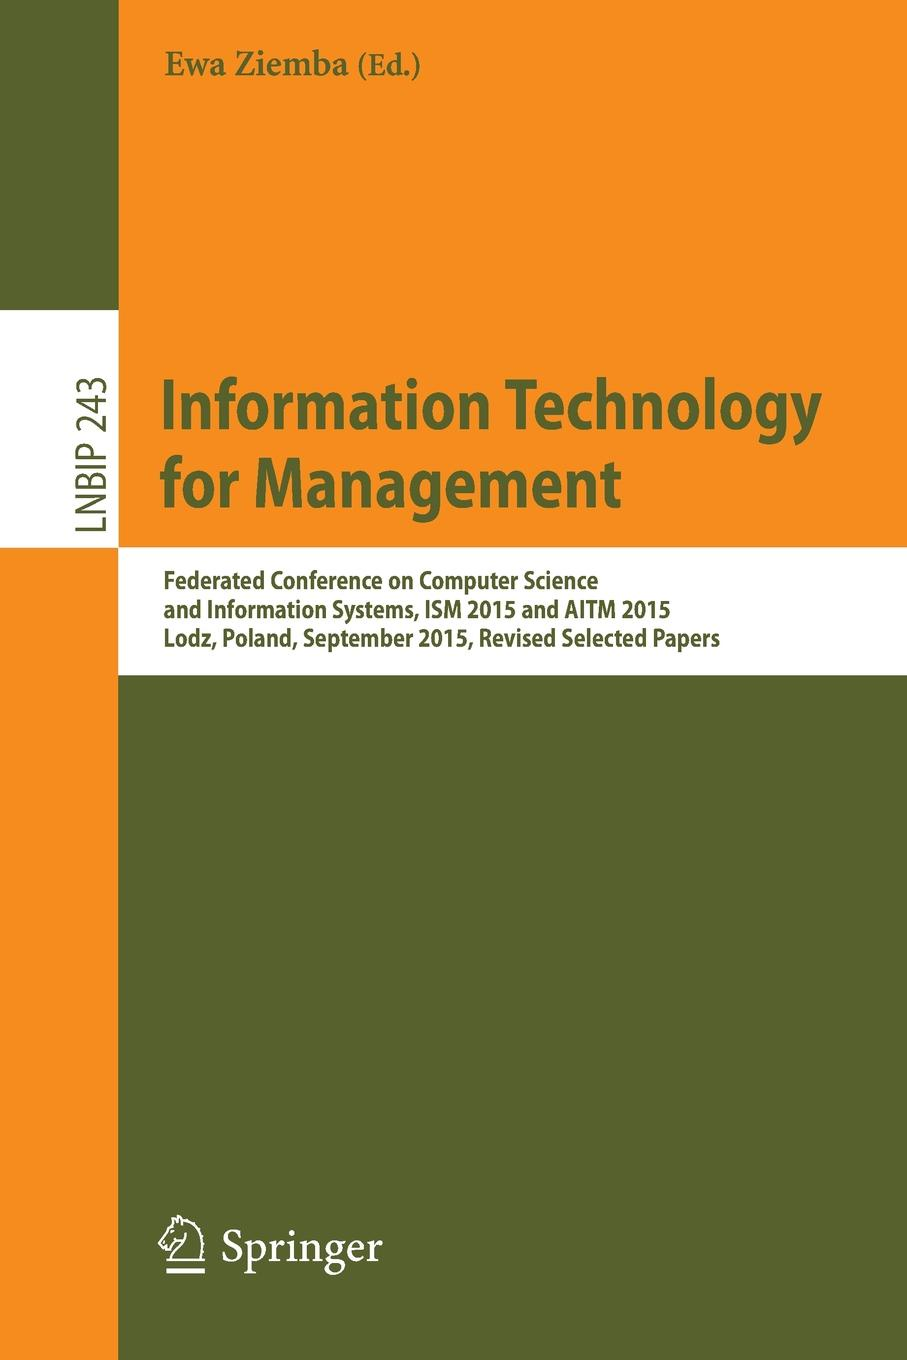 лучшая цена Information Technology for Management. Federated Conference on Computer Science and Information Systems, ISM 2015 and AITM 2015, Lodz, Poland, September 2015, Revised Selected Papers